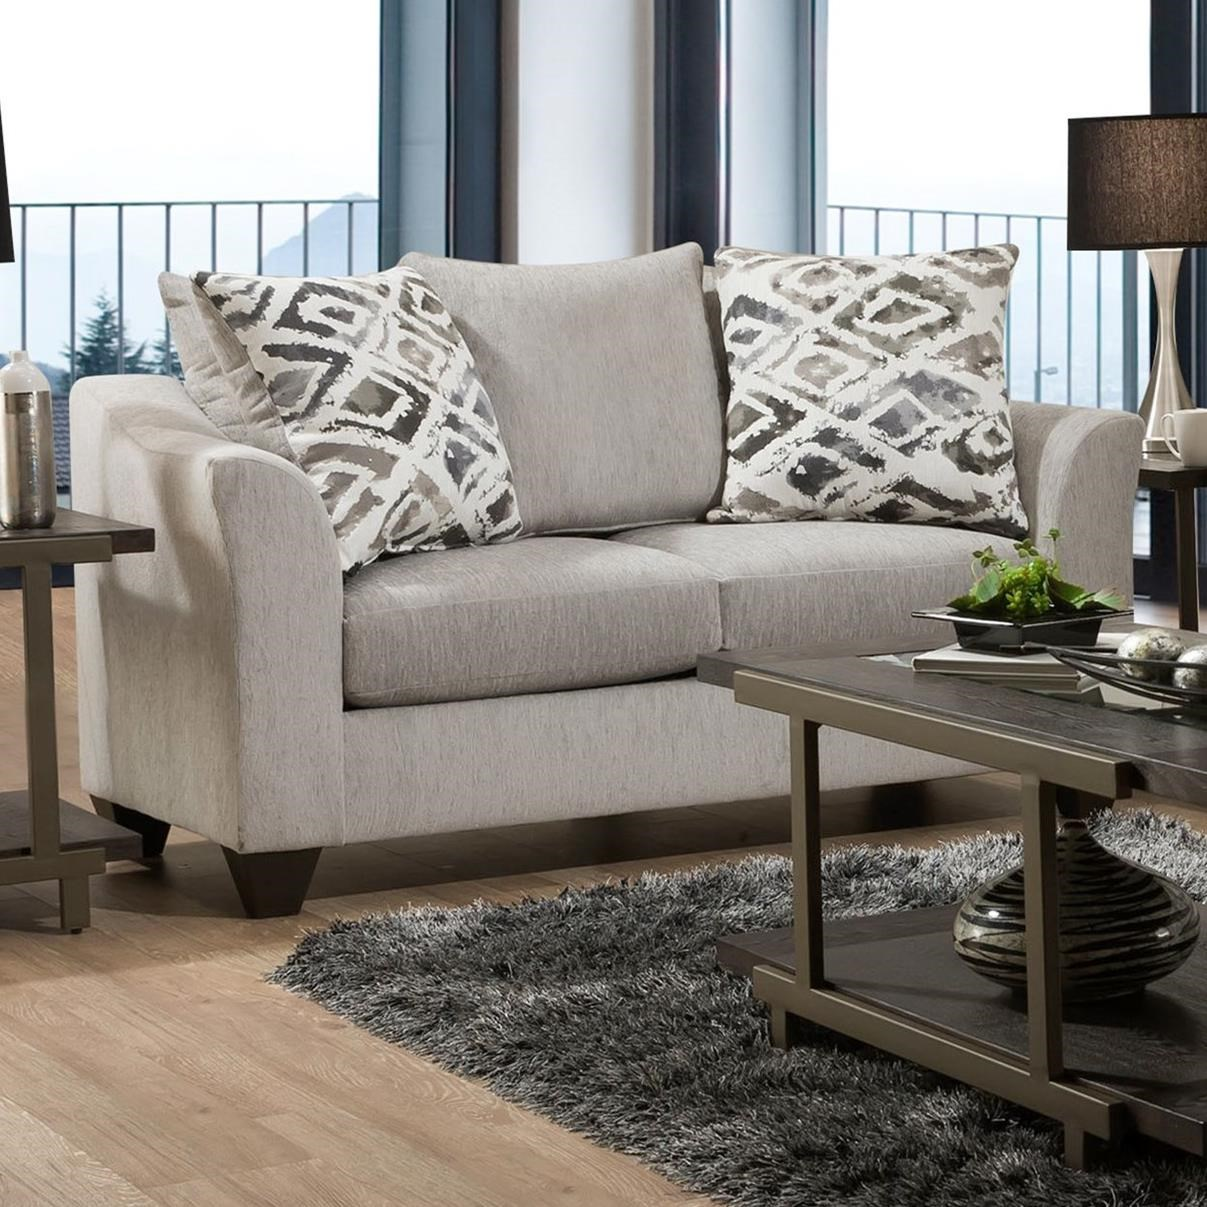 1380 Loveseat by Peak Living at Prime Brothers Furniture